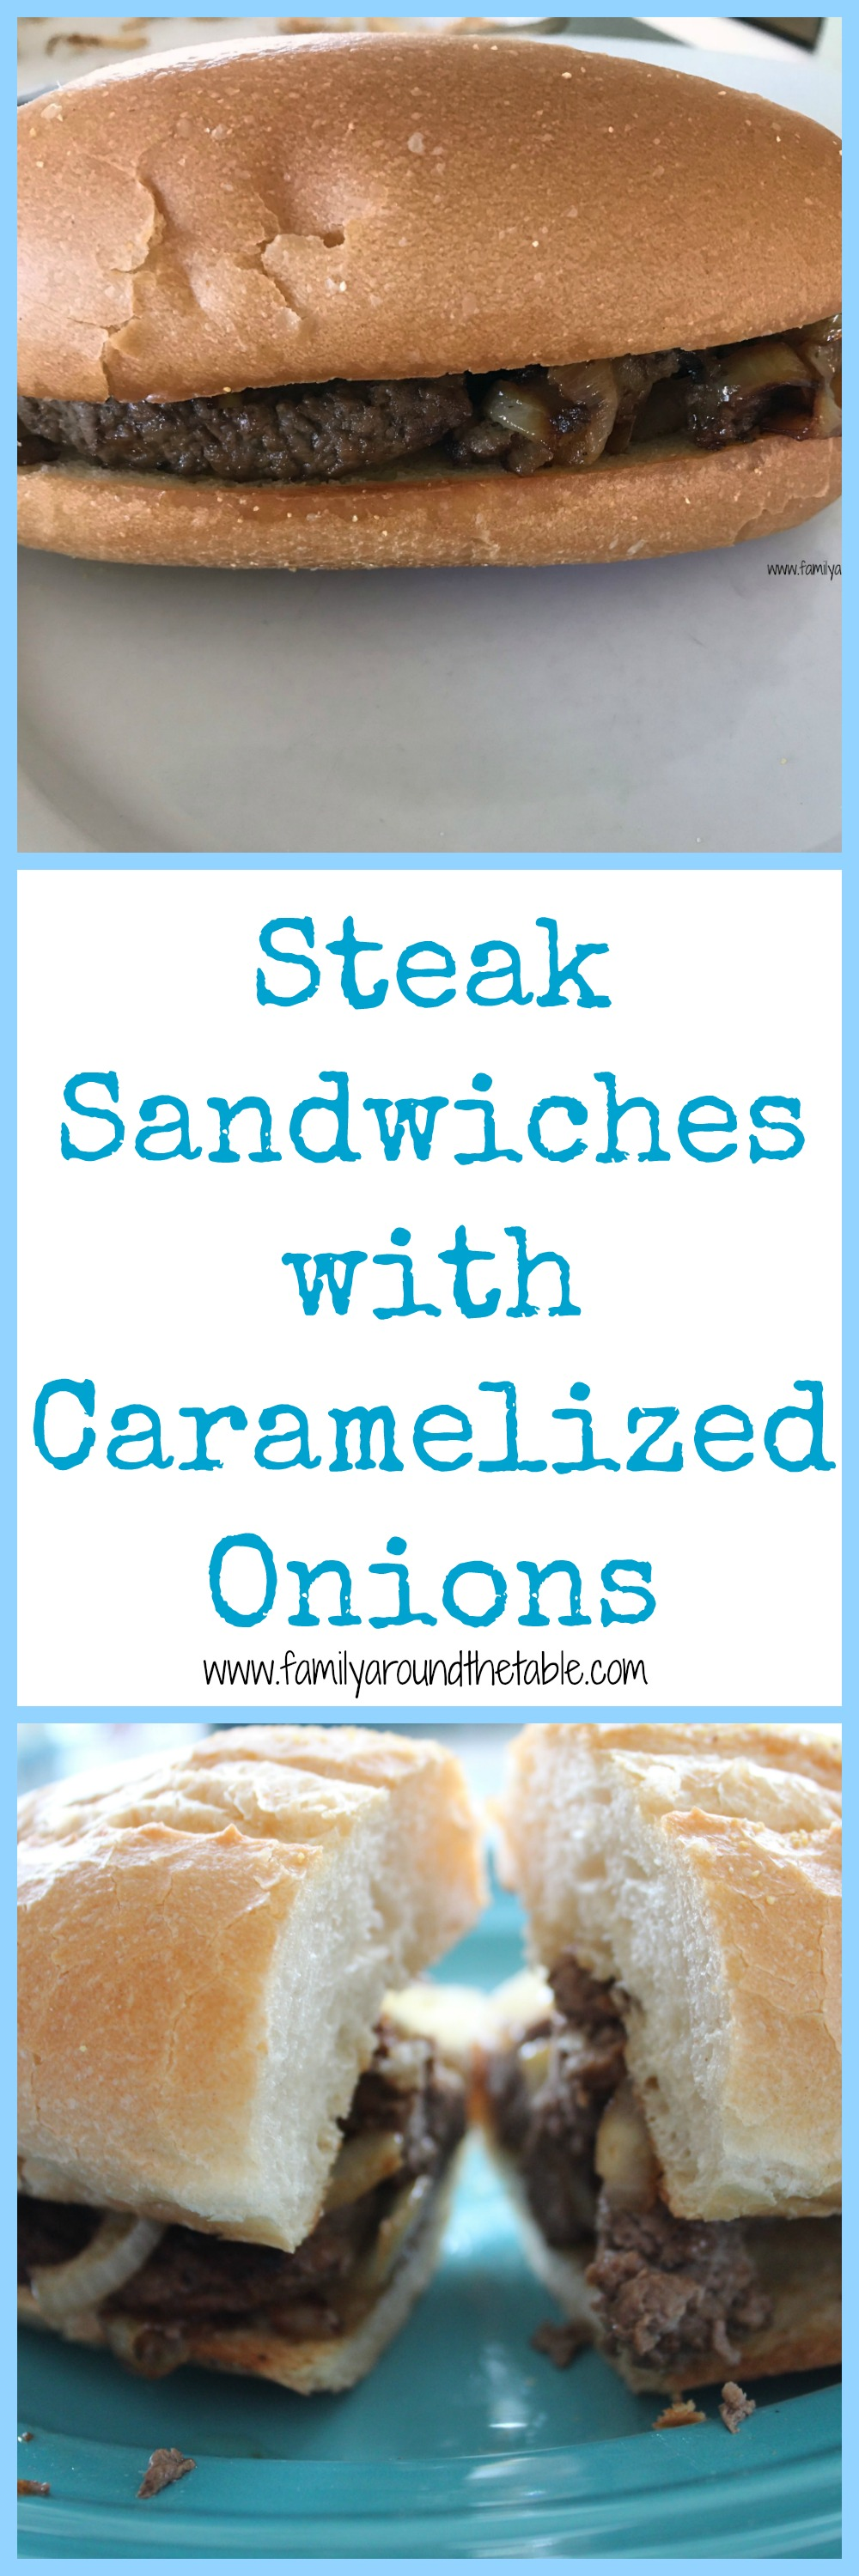 Steak sandwiches with caramelized opinions will make any Dad happy.